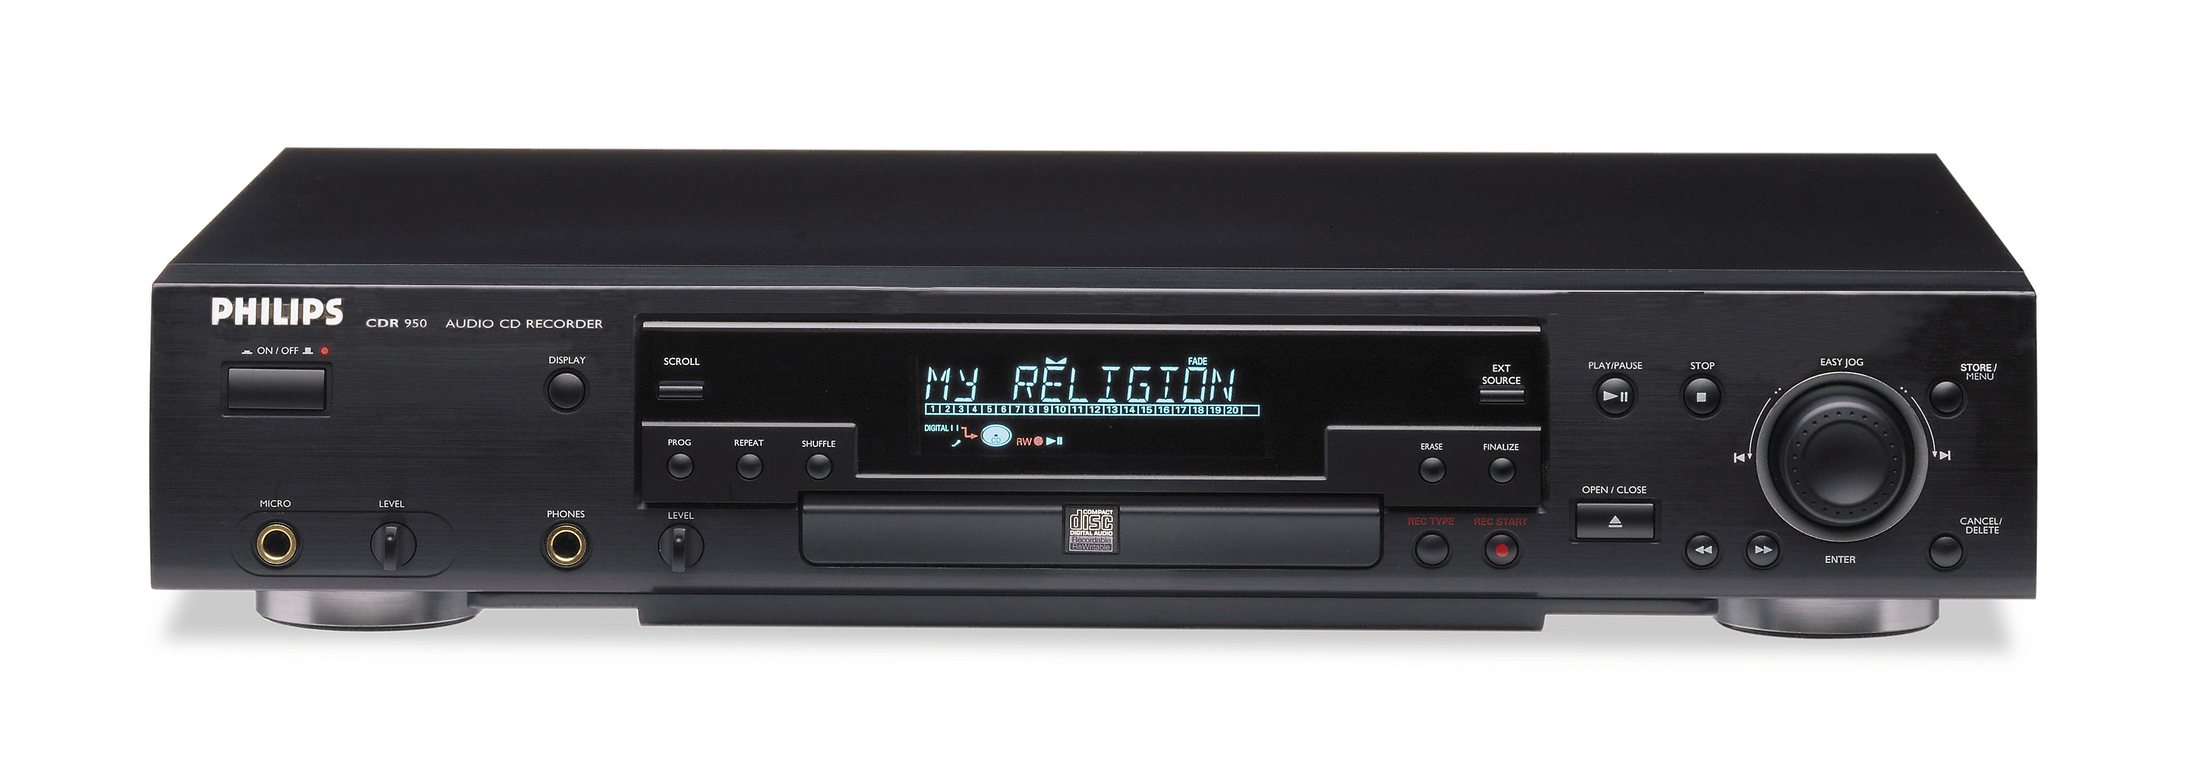 CDR RECORDER PHILIPS CDR950 black & remote control